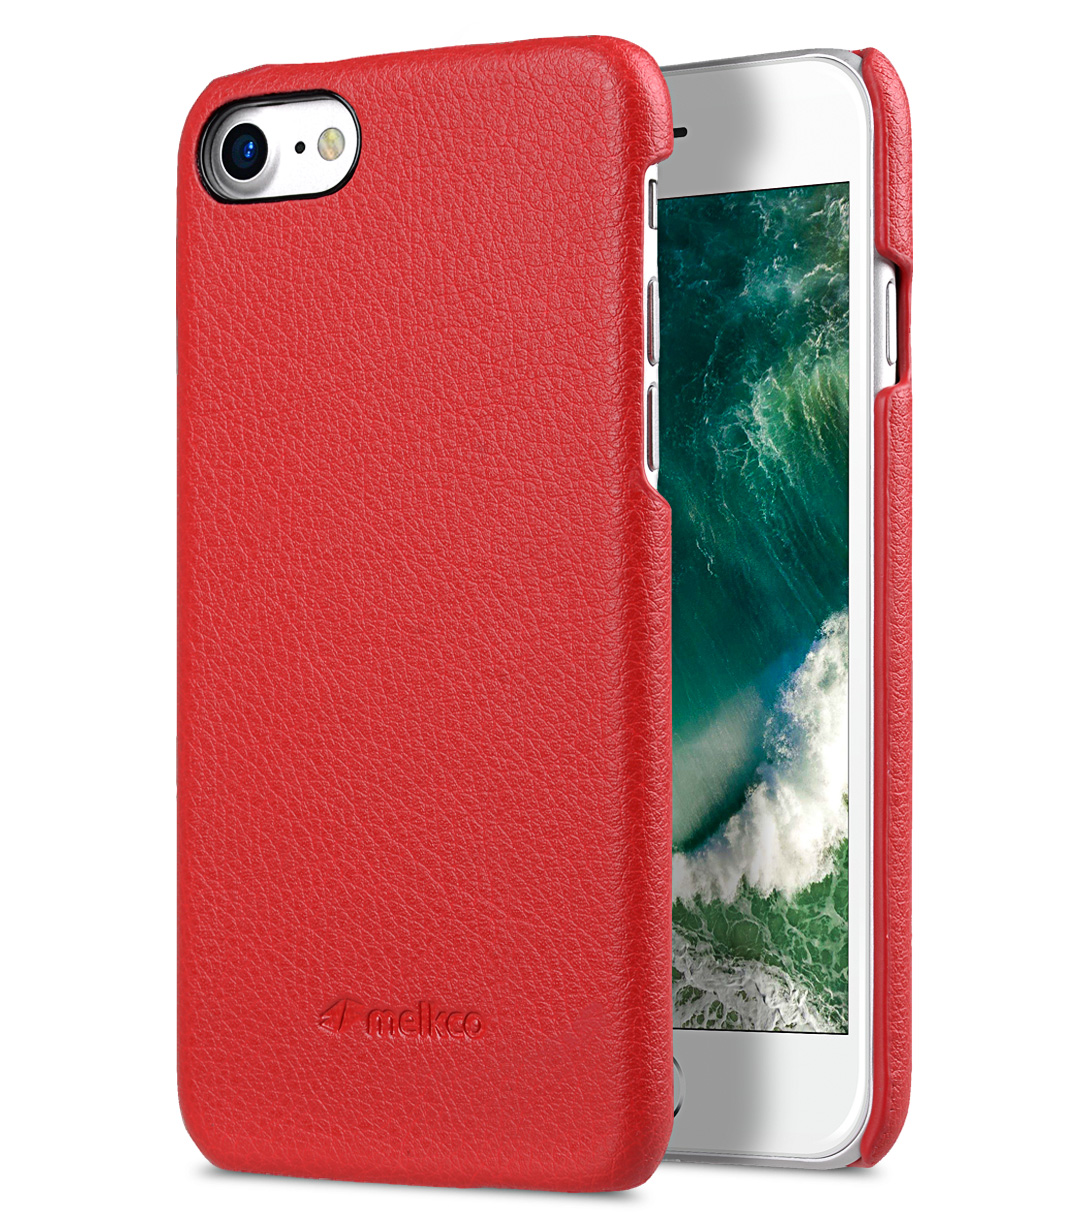 melkco mini pu leather snap cover for apple iphone 7 8 4 7 red lc melkco phone accessories. Black Bedroom Furniture Sets. Home Design Ideas